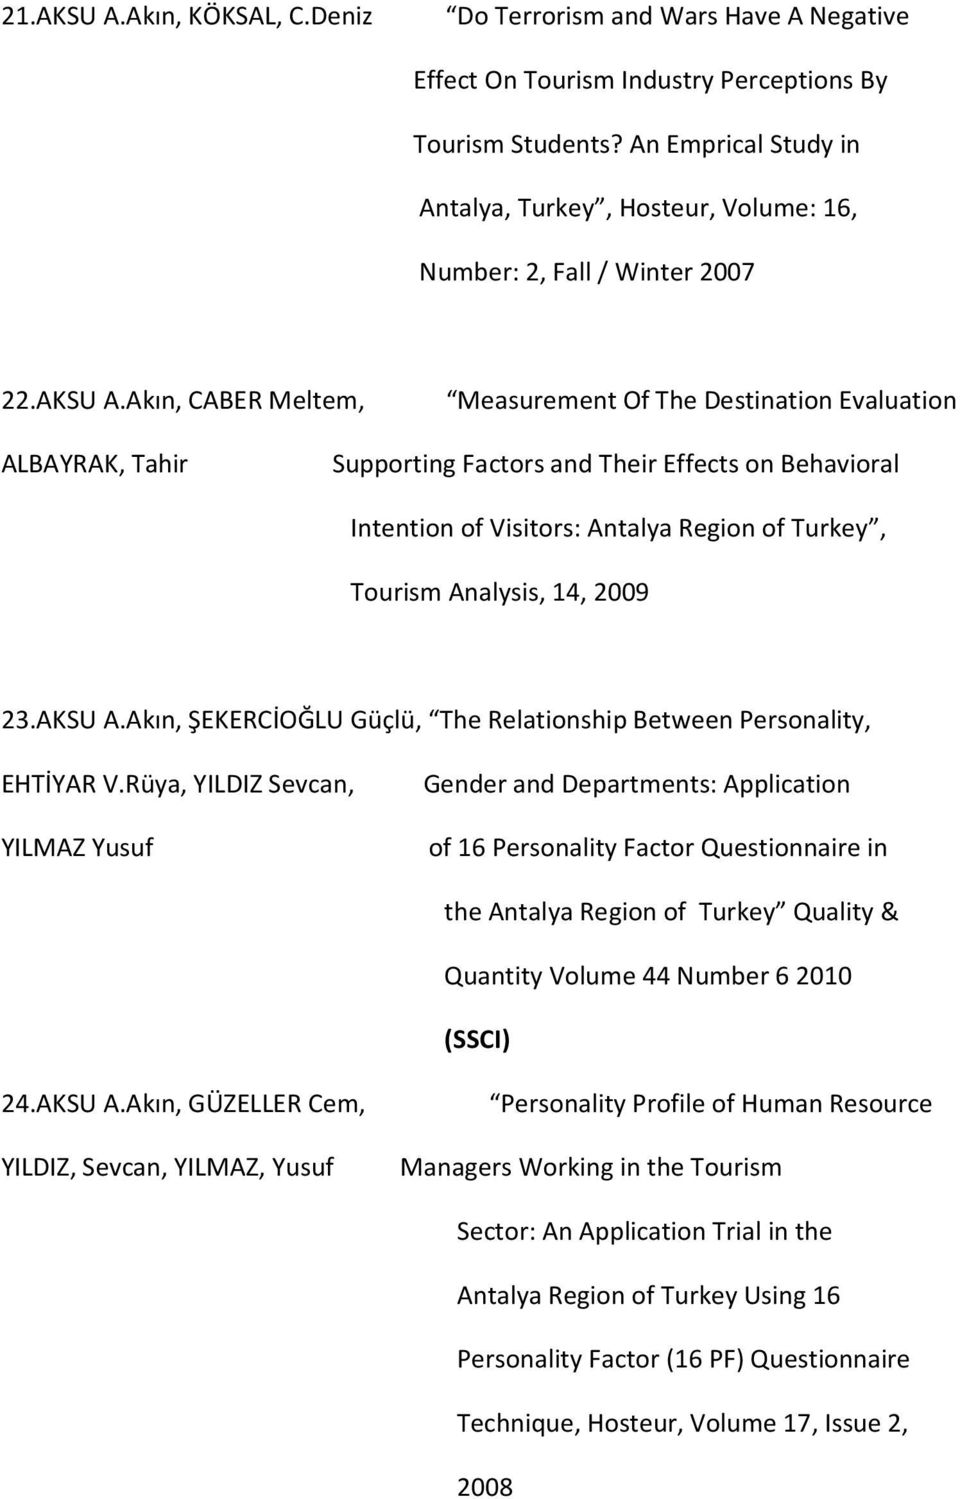 Akın, CABER Meltem, Measurement Of The Destination Evaluation ALBAYRAK, Tahir Supporting Factors and Their Effects on Behavioral Intention of Visitors: Antalya Region of Turkey, Tourism Analysis, 14,